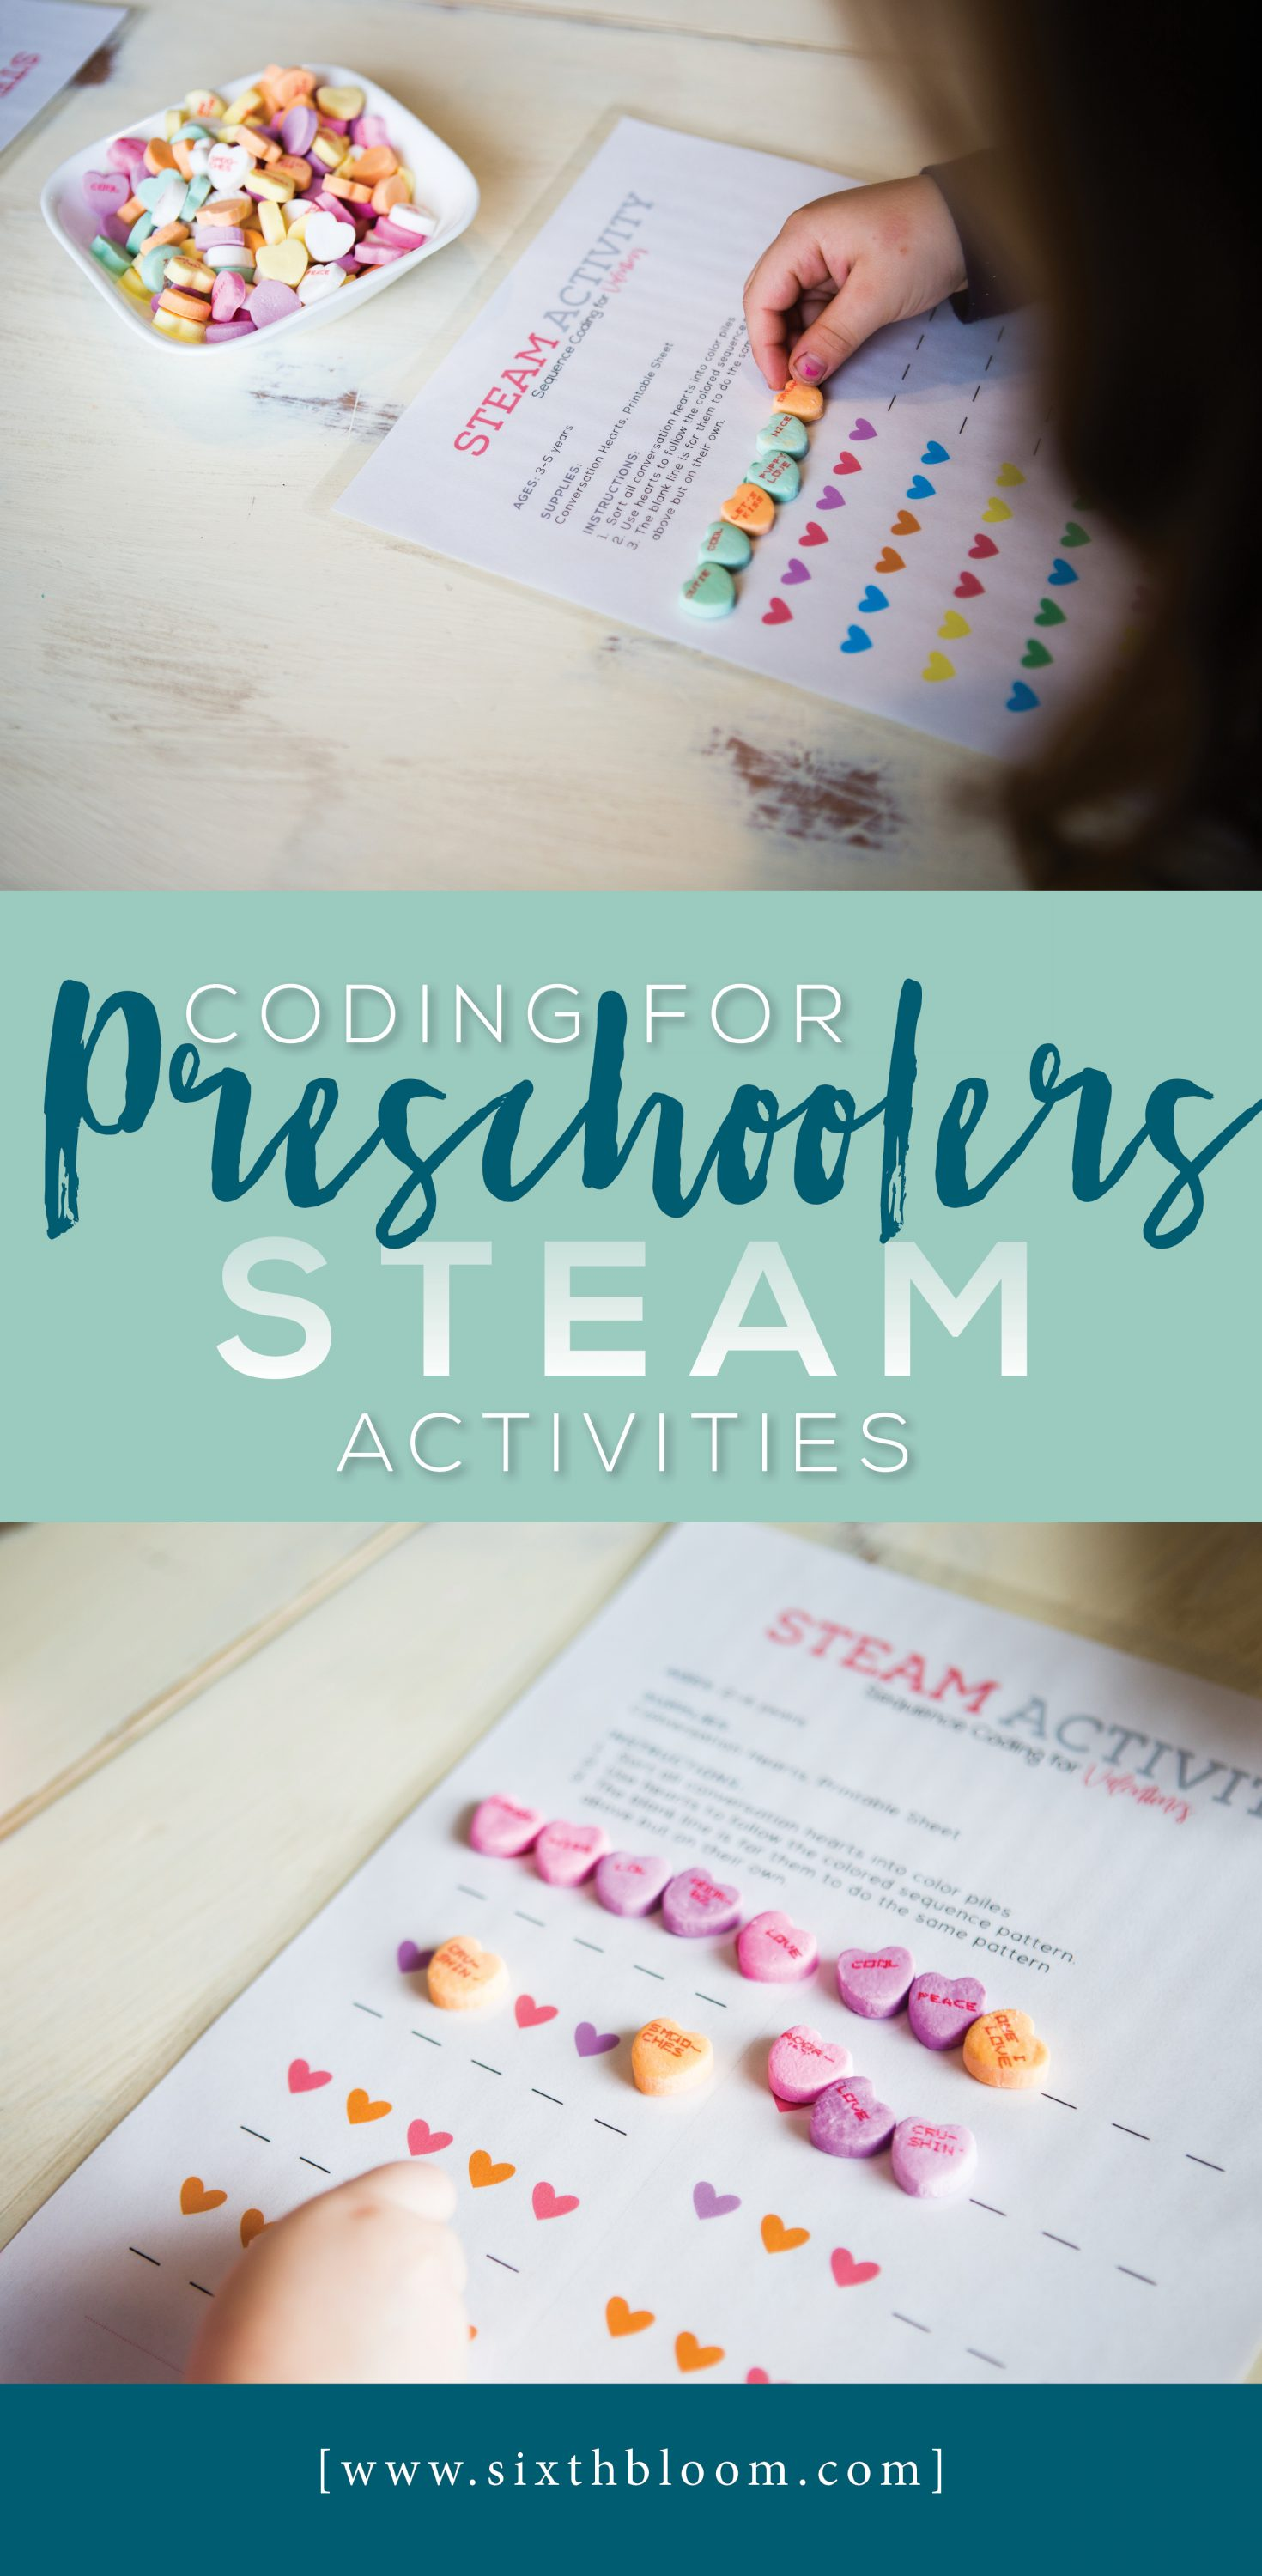 steam preschool coding